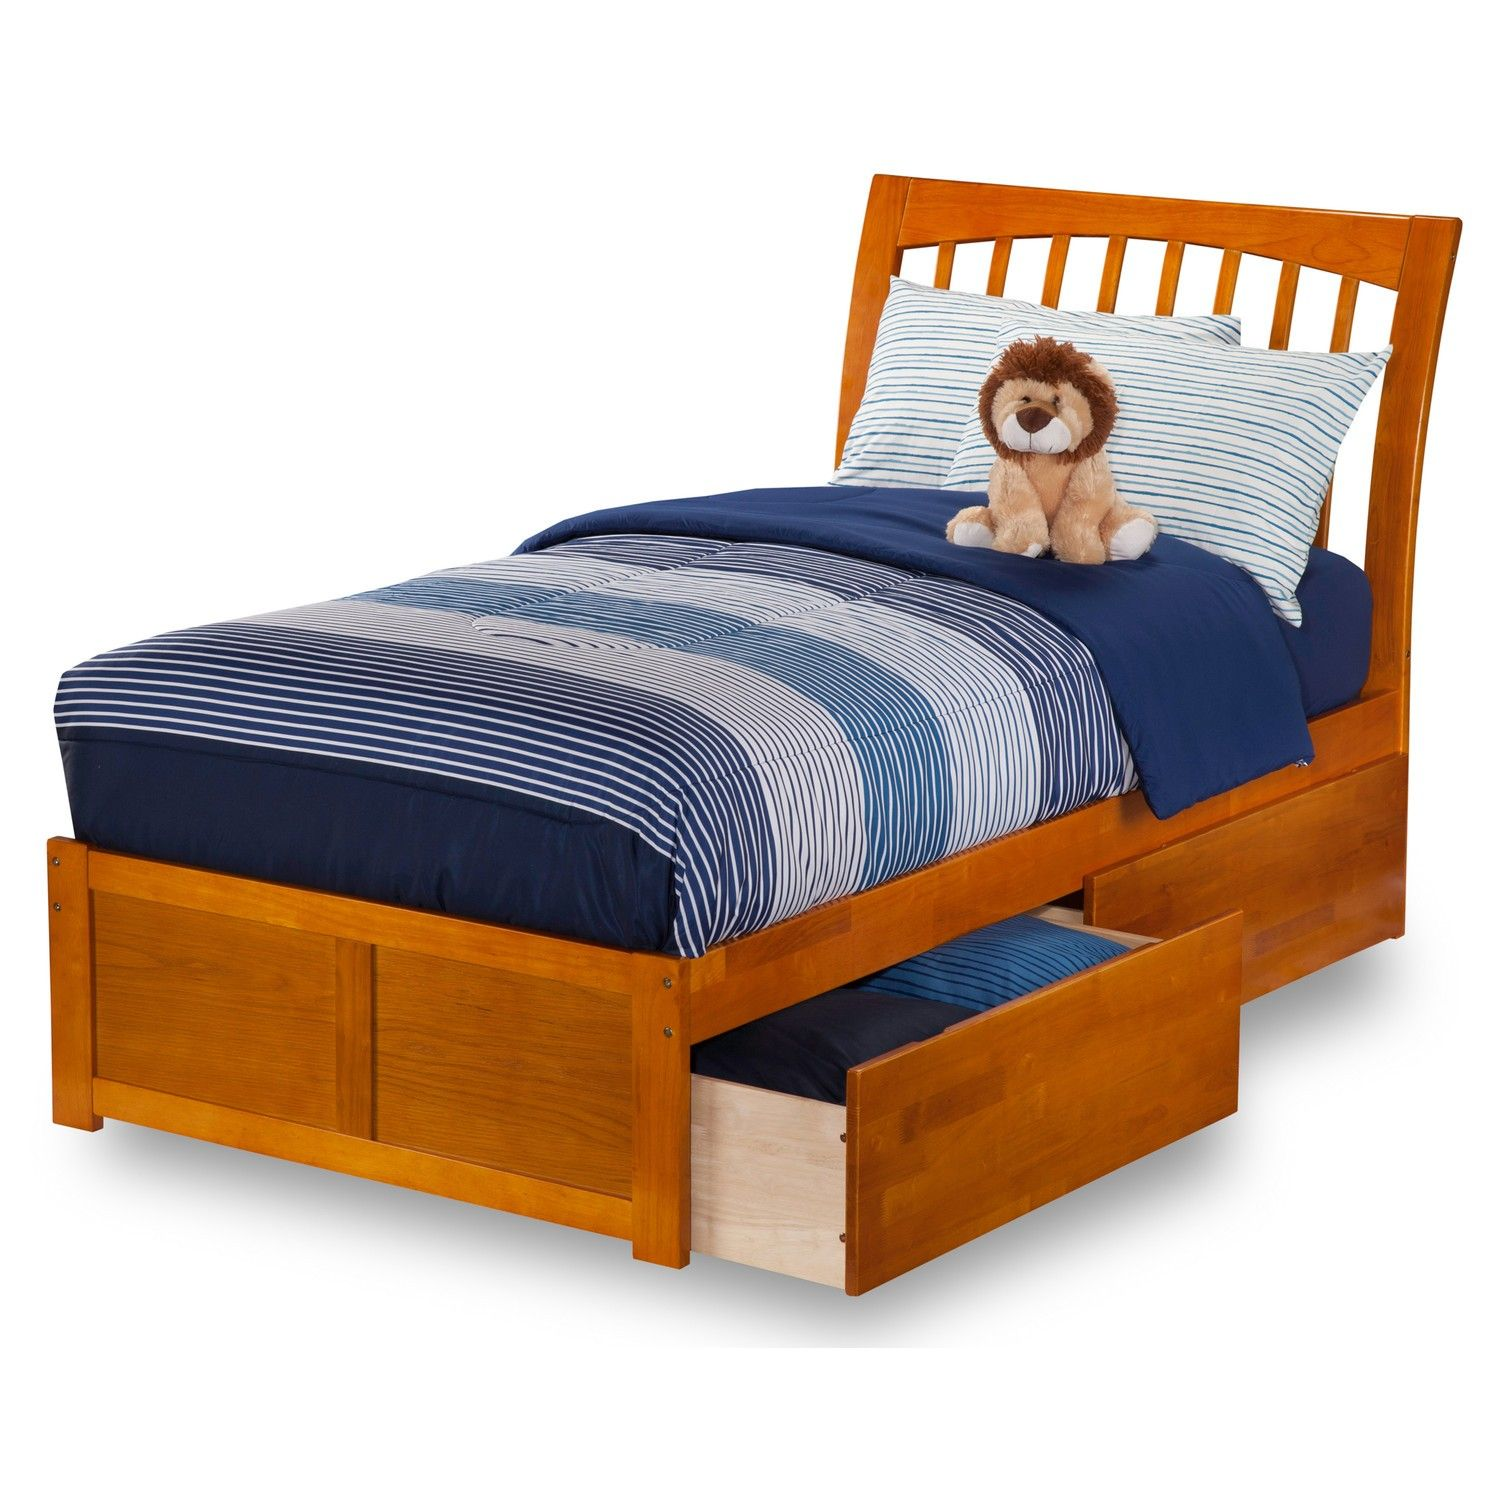 bedroom furniture extra long light brown varnished wooden kids platform bed with two drawers decor with - Extra Long Twin Bed Frame